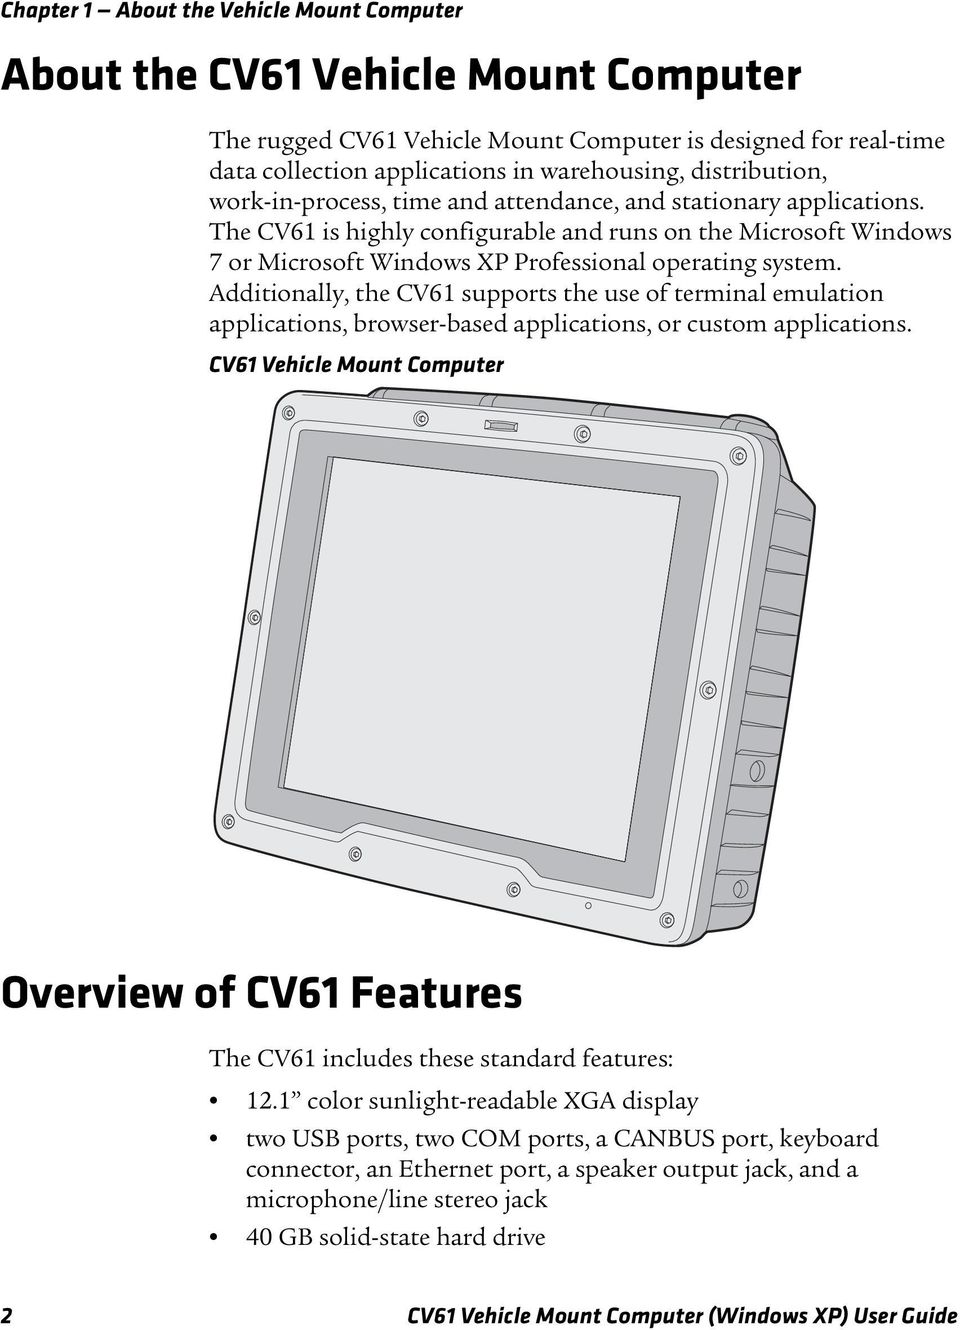 The CV61 is highly configurable and runs on the Microsoft Windows 7 or Microsoft Windows XP Professional operating system.